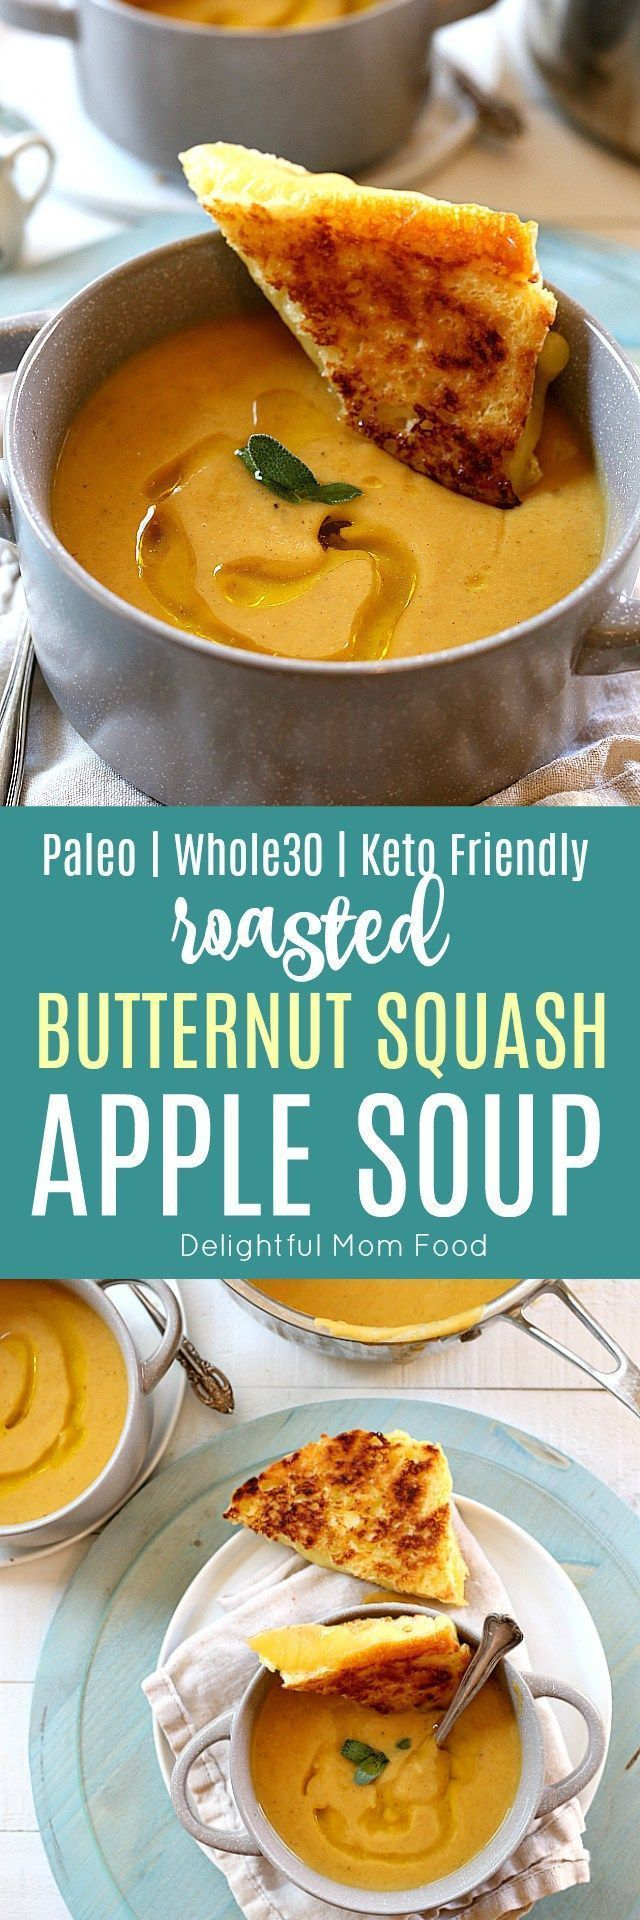 Nourishing roasted butternut squash apple soup has all the flavors of fall simmered together after roasting the squash for about 30 minutes. This vegan soup is made with an optional Paleo, Keto, Whole30 version and is a fall favorite all around! | Delightful Mom Food | #fall #paleo #whole30 #keto #healthy #butternutsquash #soup #recipe #apple